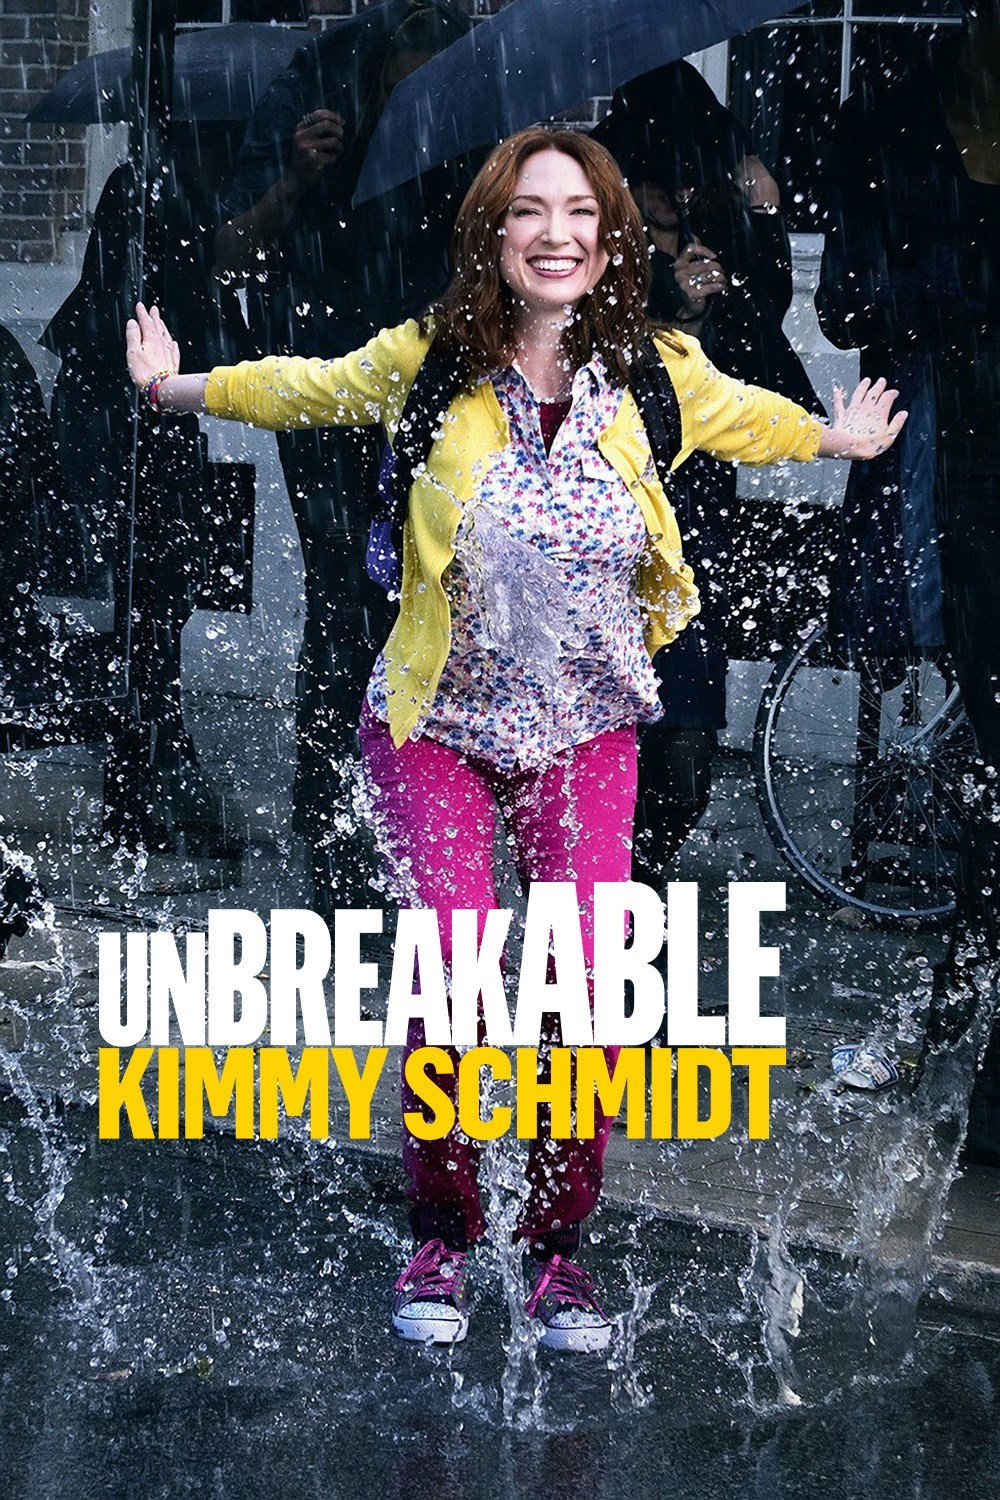 unbreakable-kimmy-schmidt-first-season.35001